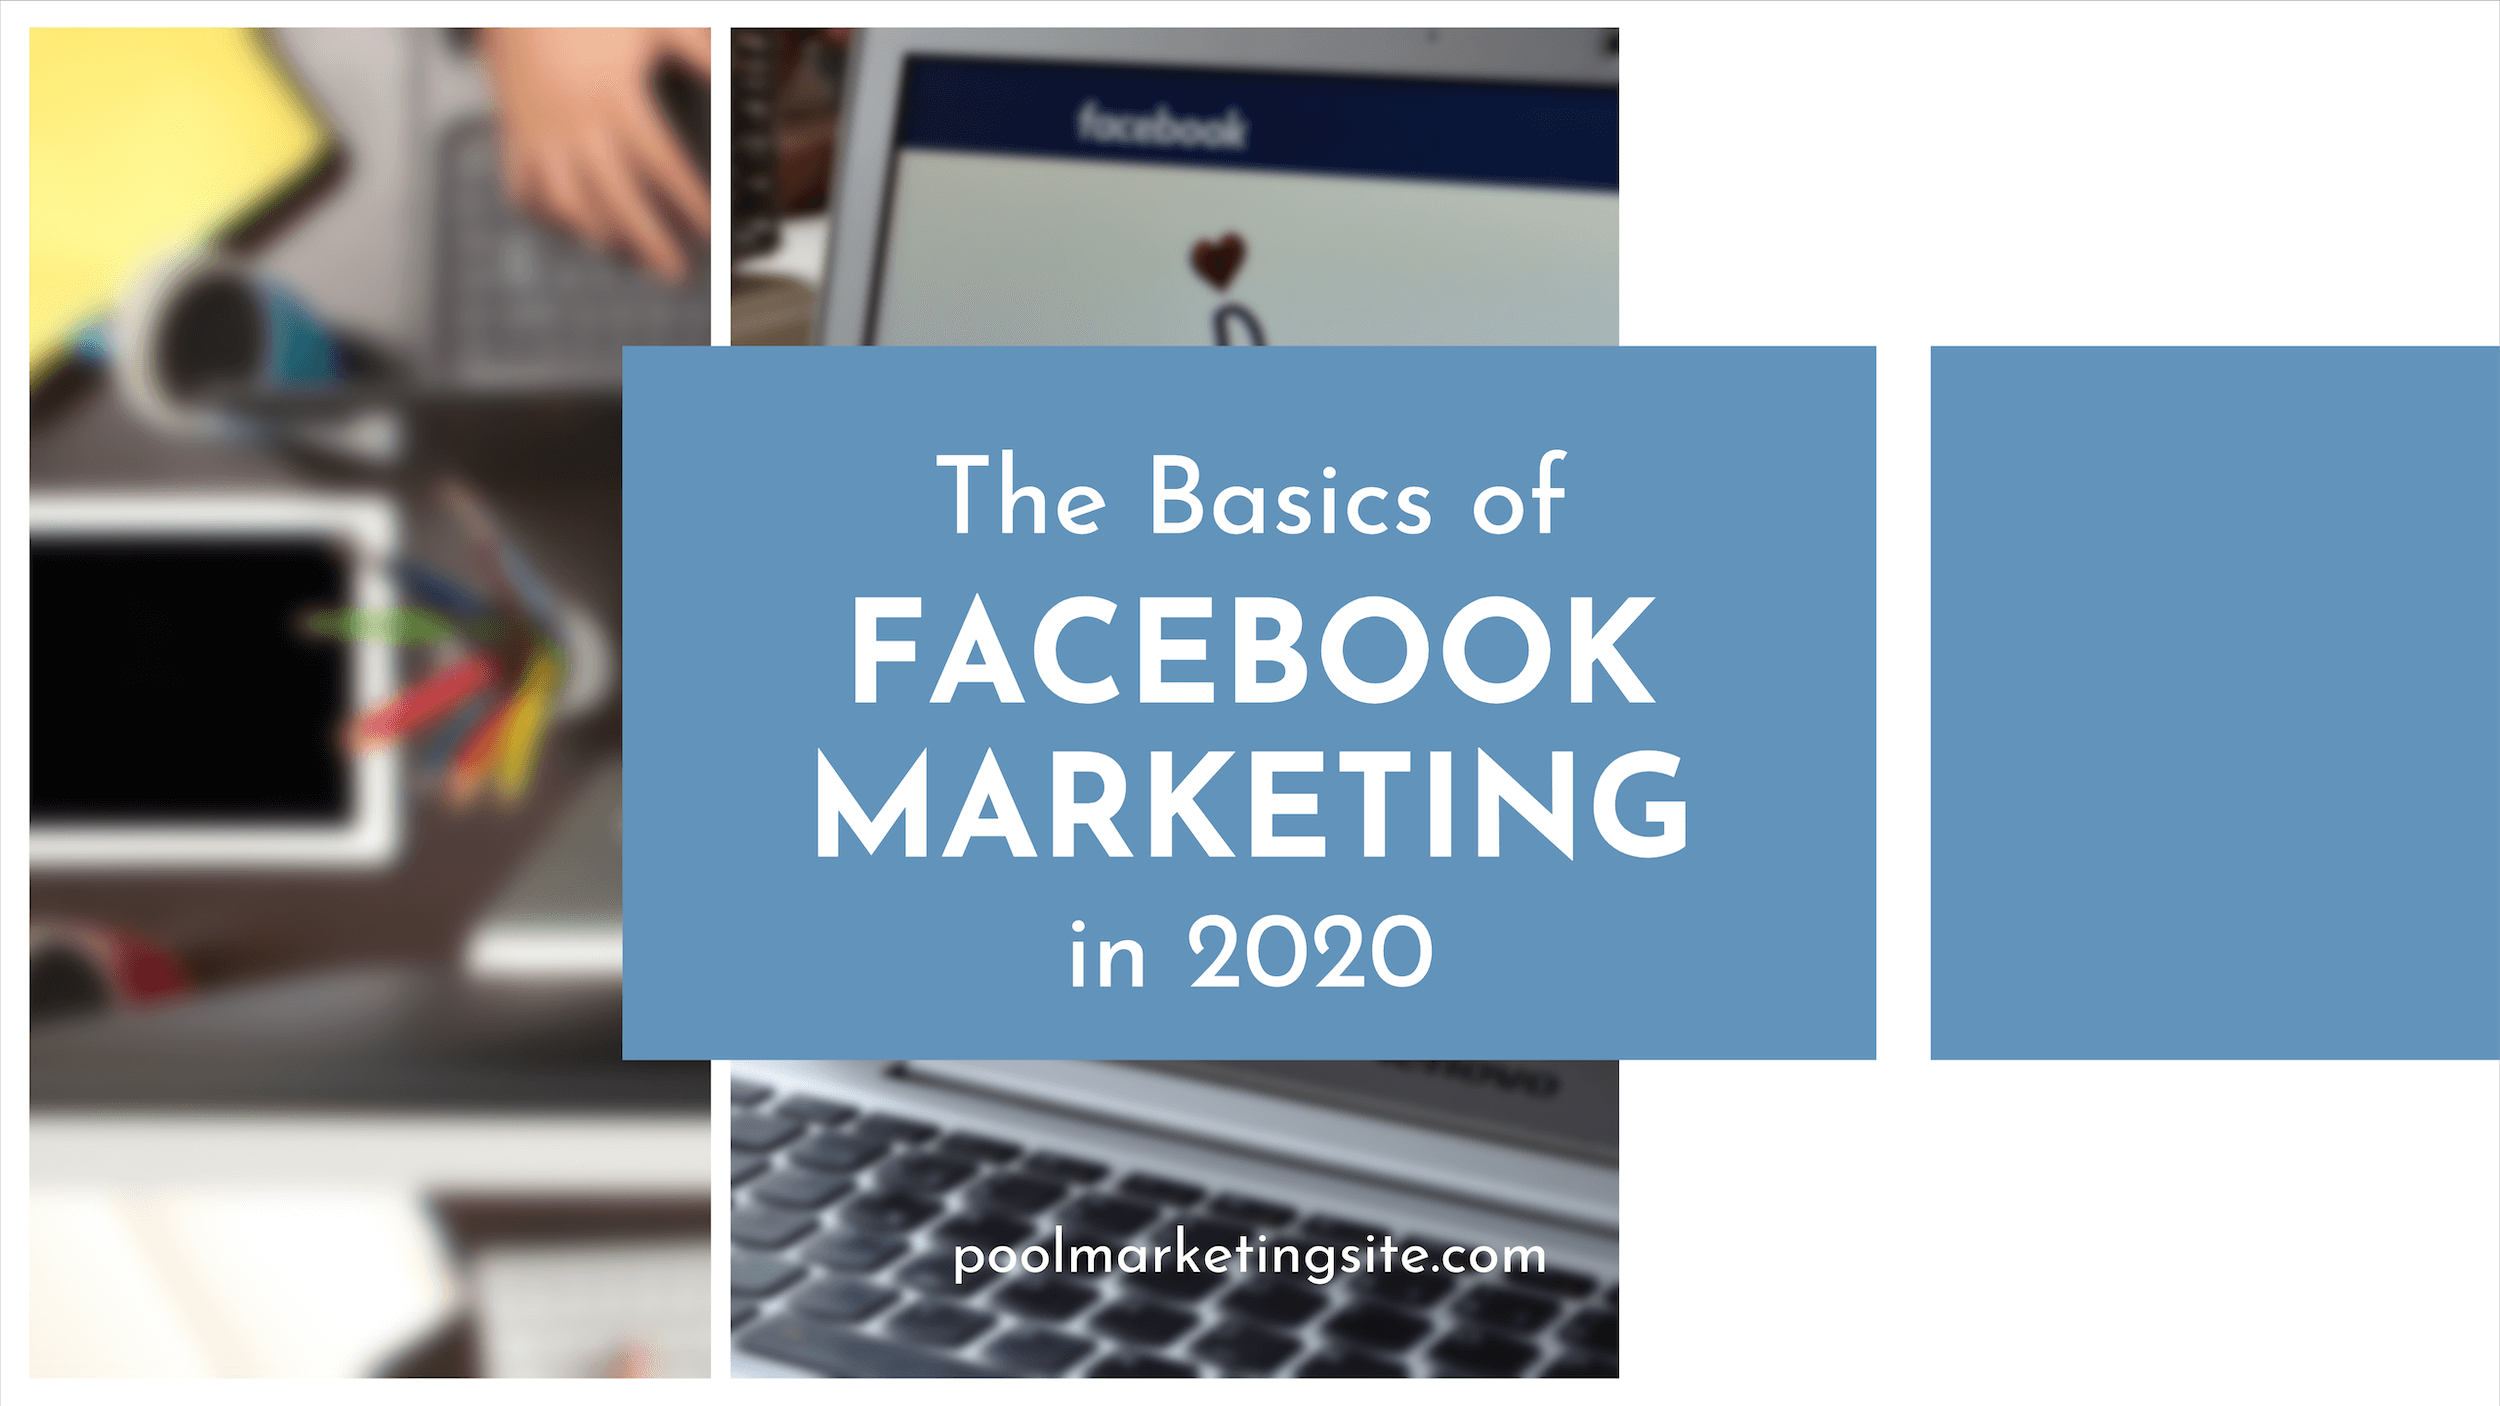 The Basics of Facebook Marketing in 2020